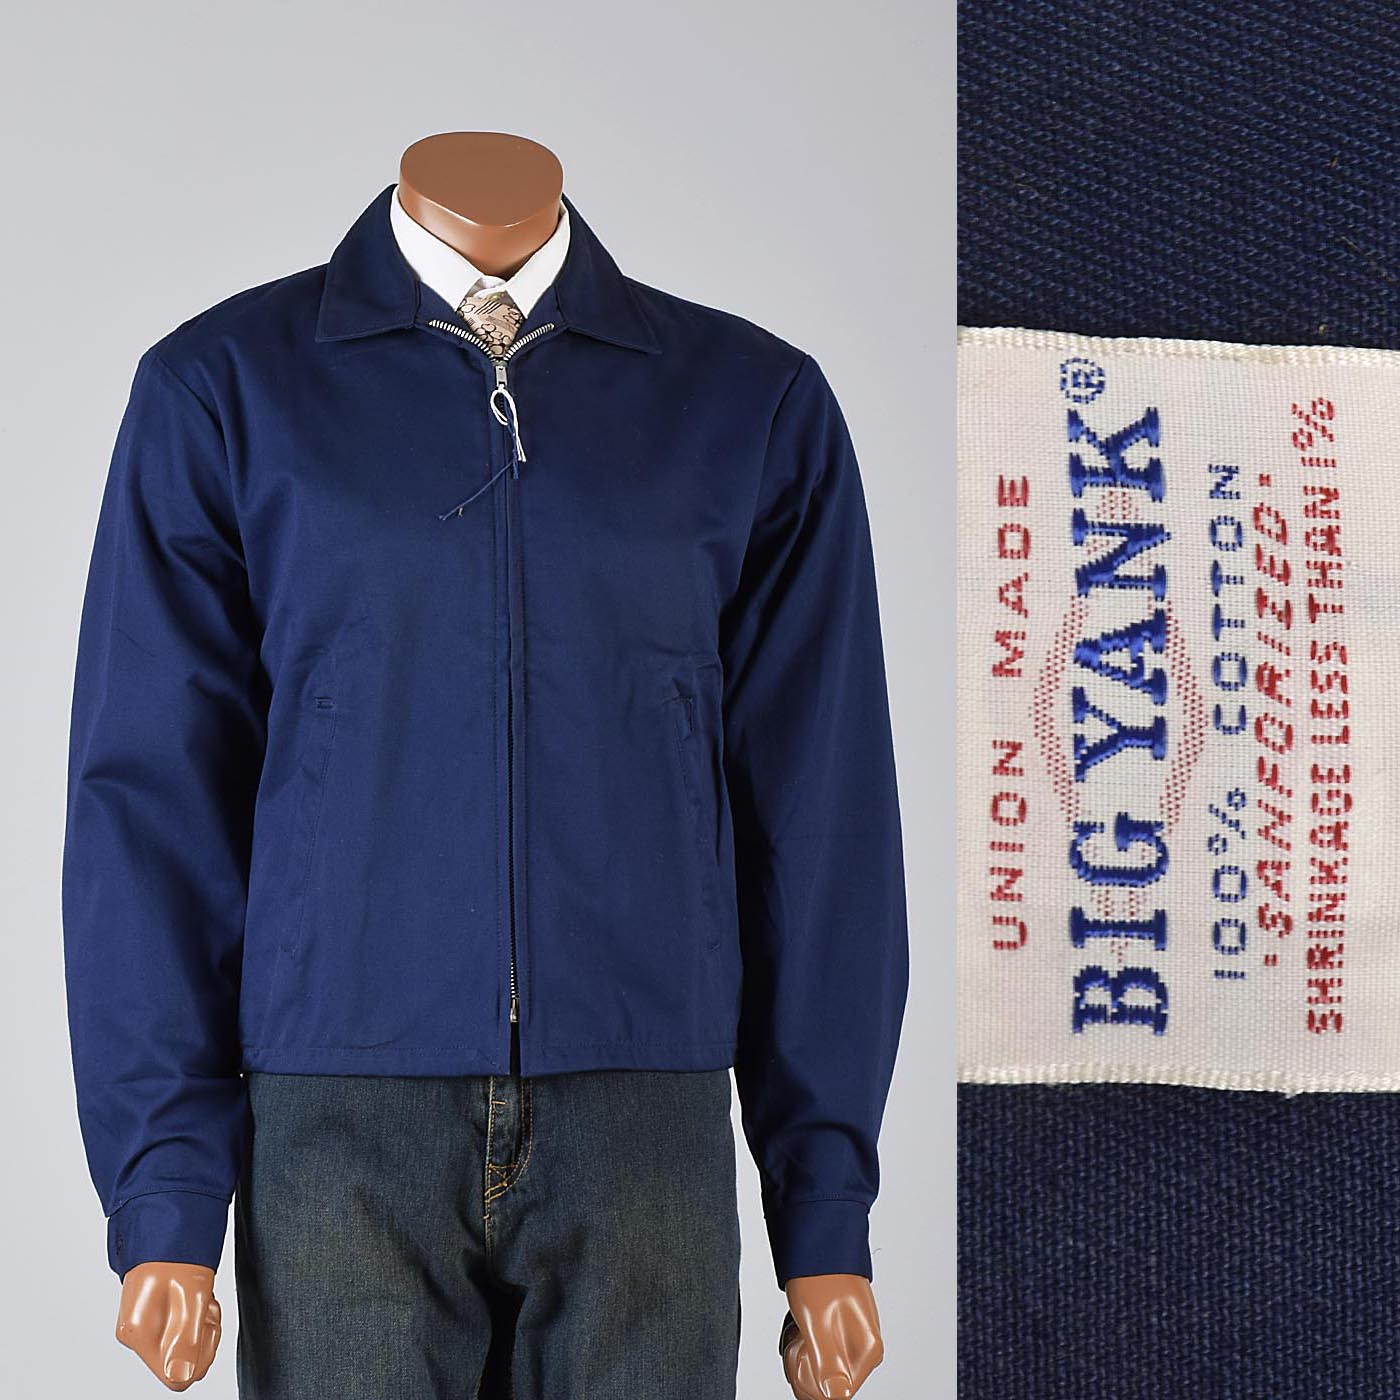 Deadstock 1950s Men's Big Yank Sanforized Blue Work Wear Zip Jacket